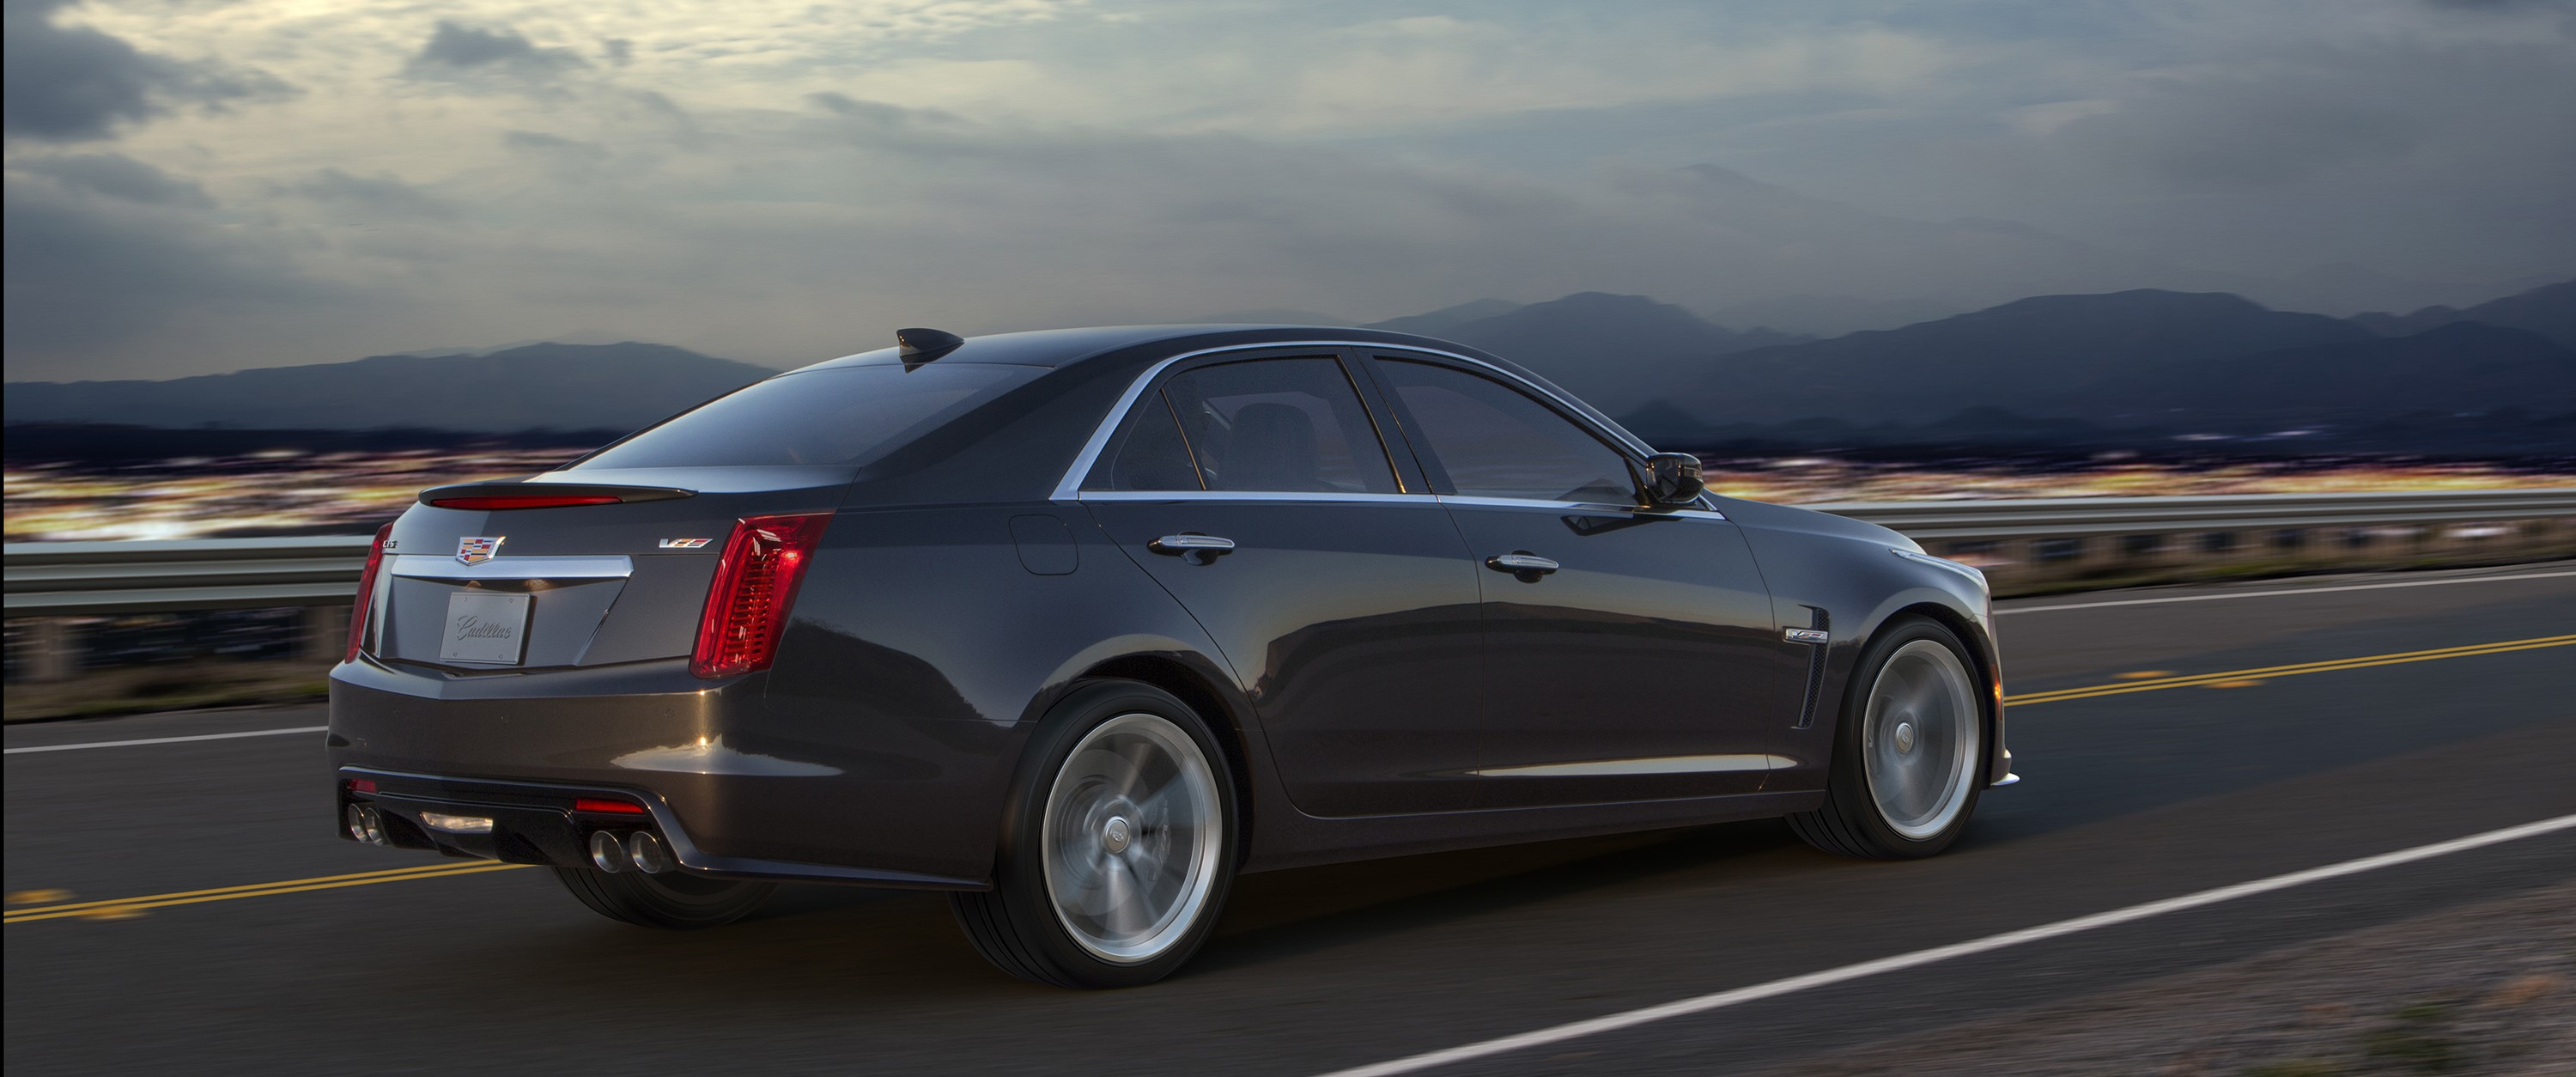 2016 Cadillac Cts V Churns Out 640 Horsepower From Z06